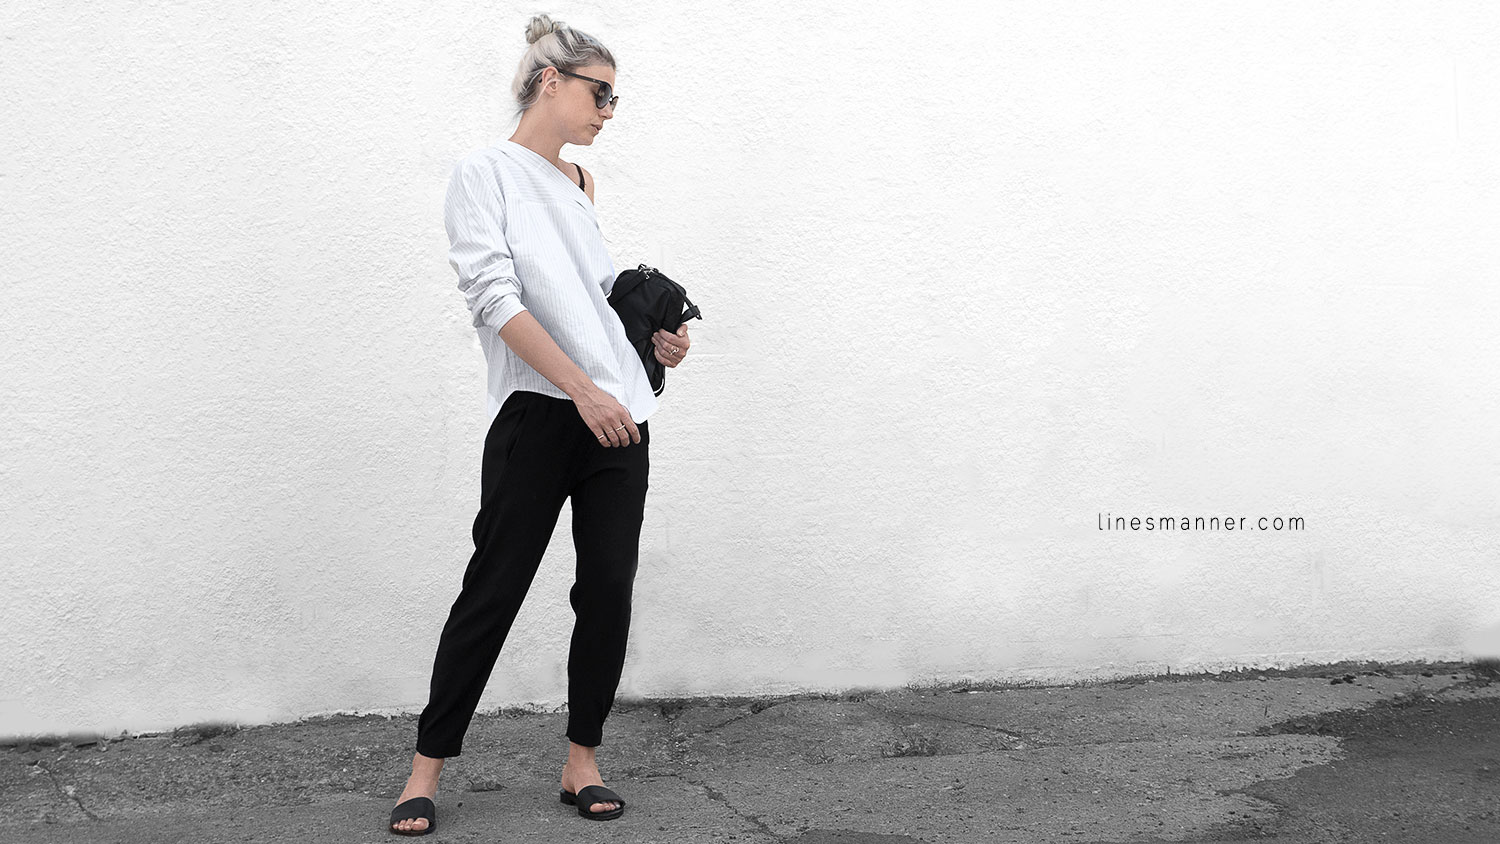 Lines-Manner-Simplicity-Off_shoulder-Monochrome-Noway_Monday-Details-Edgy6Backward-Sleek Statement_piece-Pinstripe-Business-Shirt-Minimal-Essentials-Outfit-Fashion-Minimal_fashion-Slides-Everlane-1